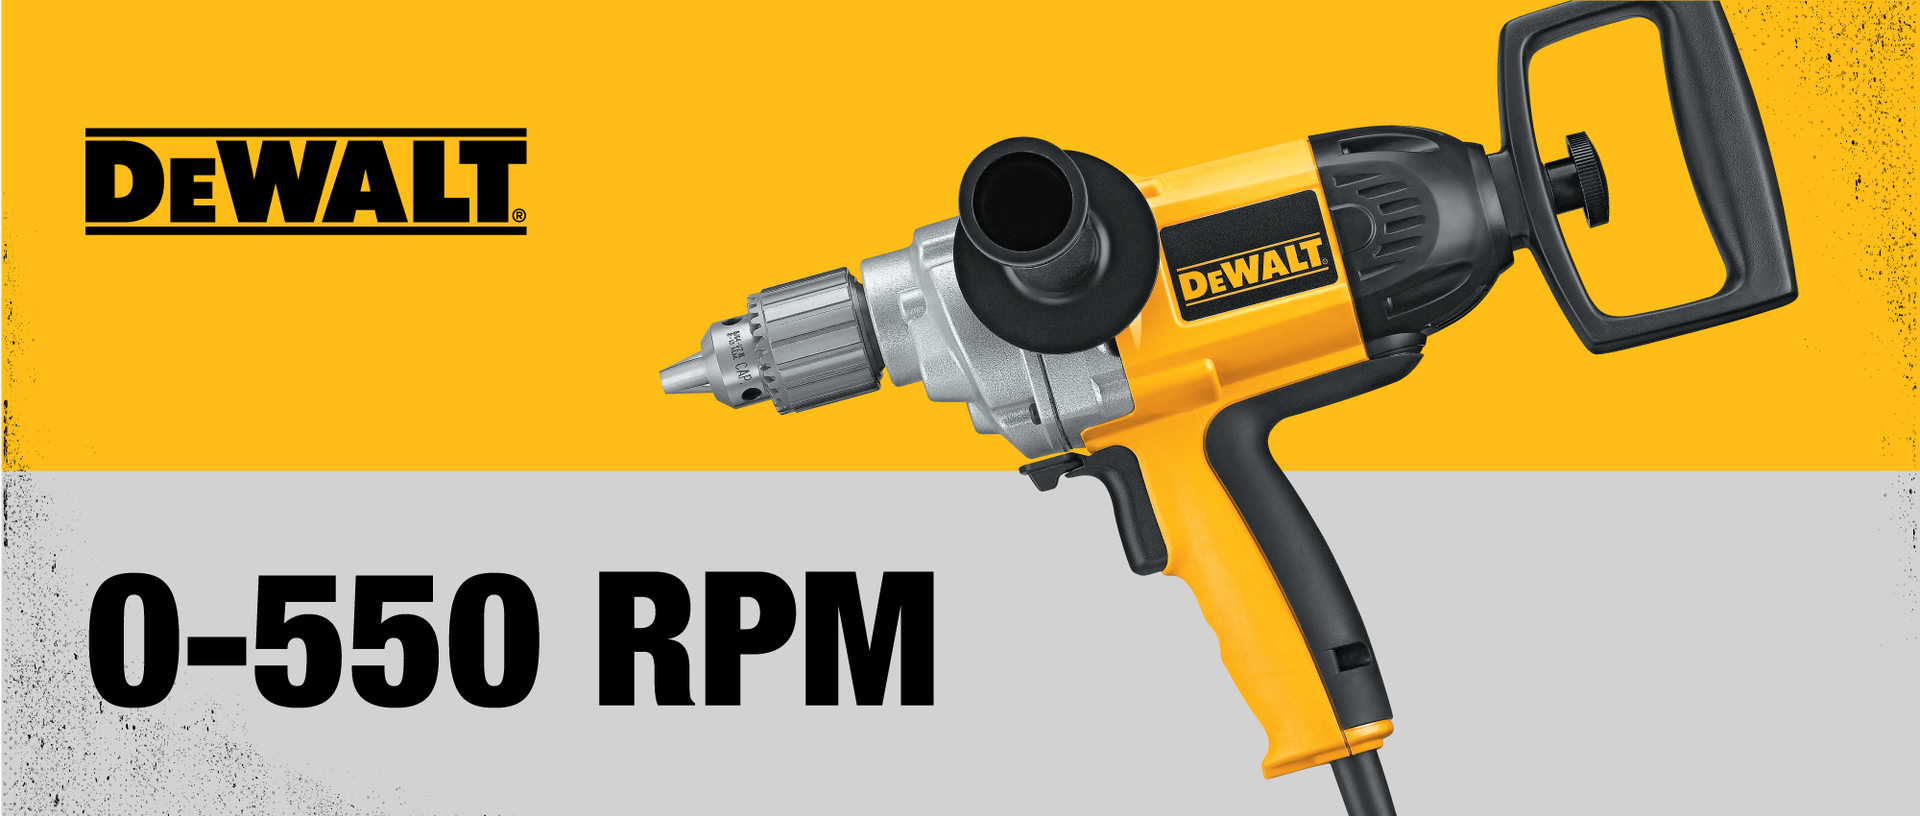 DEWALT 9-Amp 1/2-in Keyed Corded Drills at Lowes com